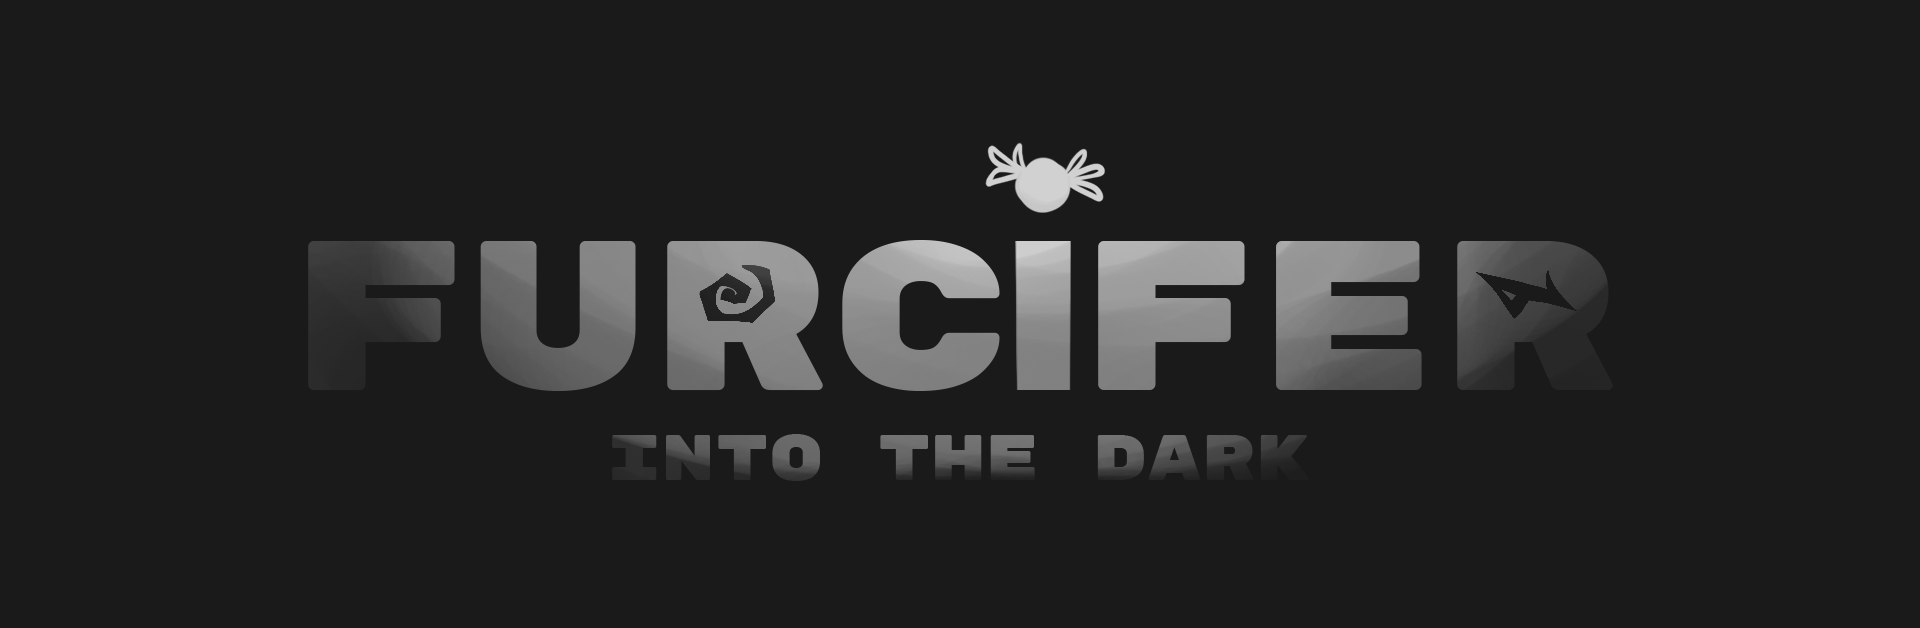 Furcifer Into the Dark